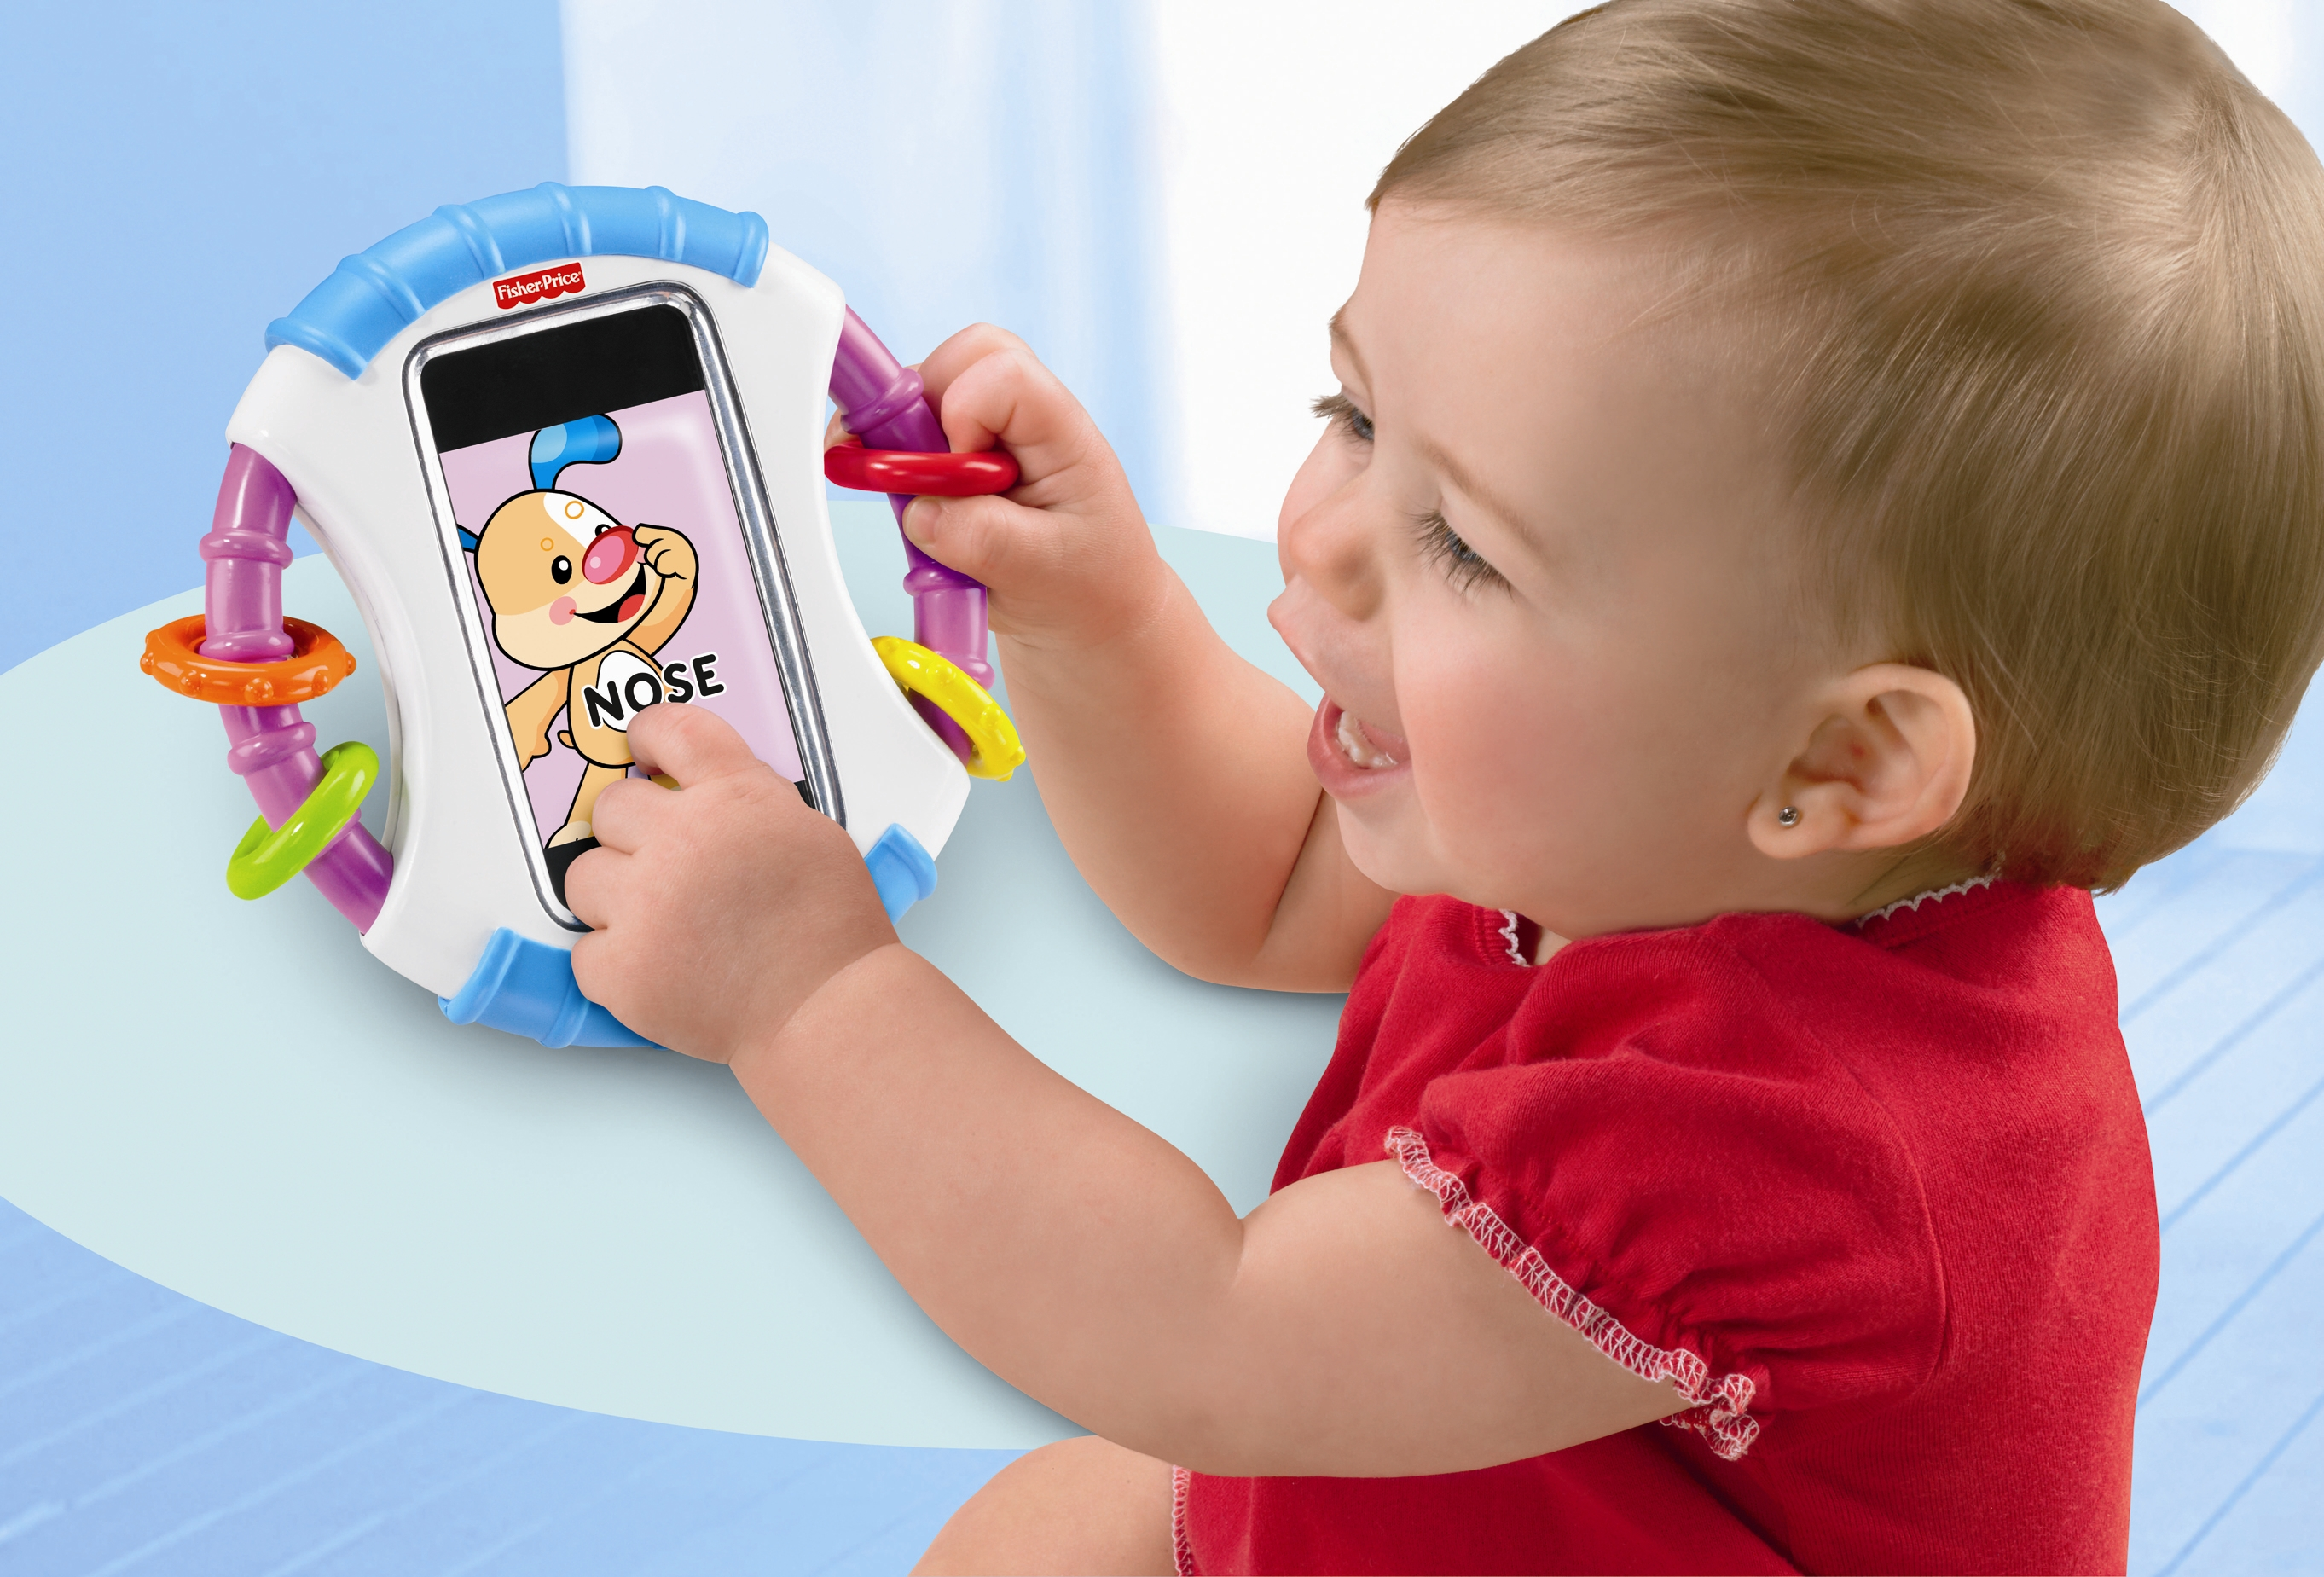 Making Your iPhone Even More Toddler-Friendly